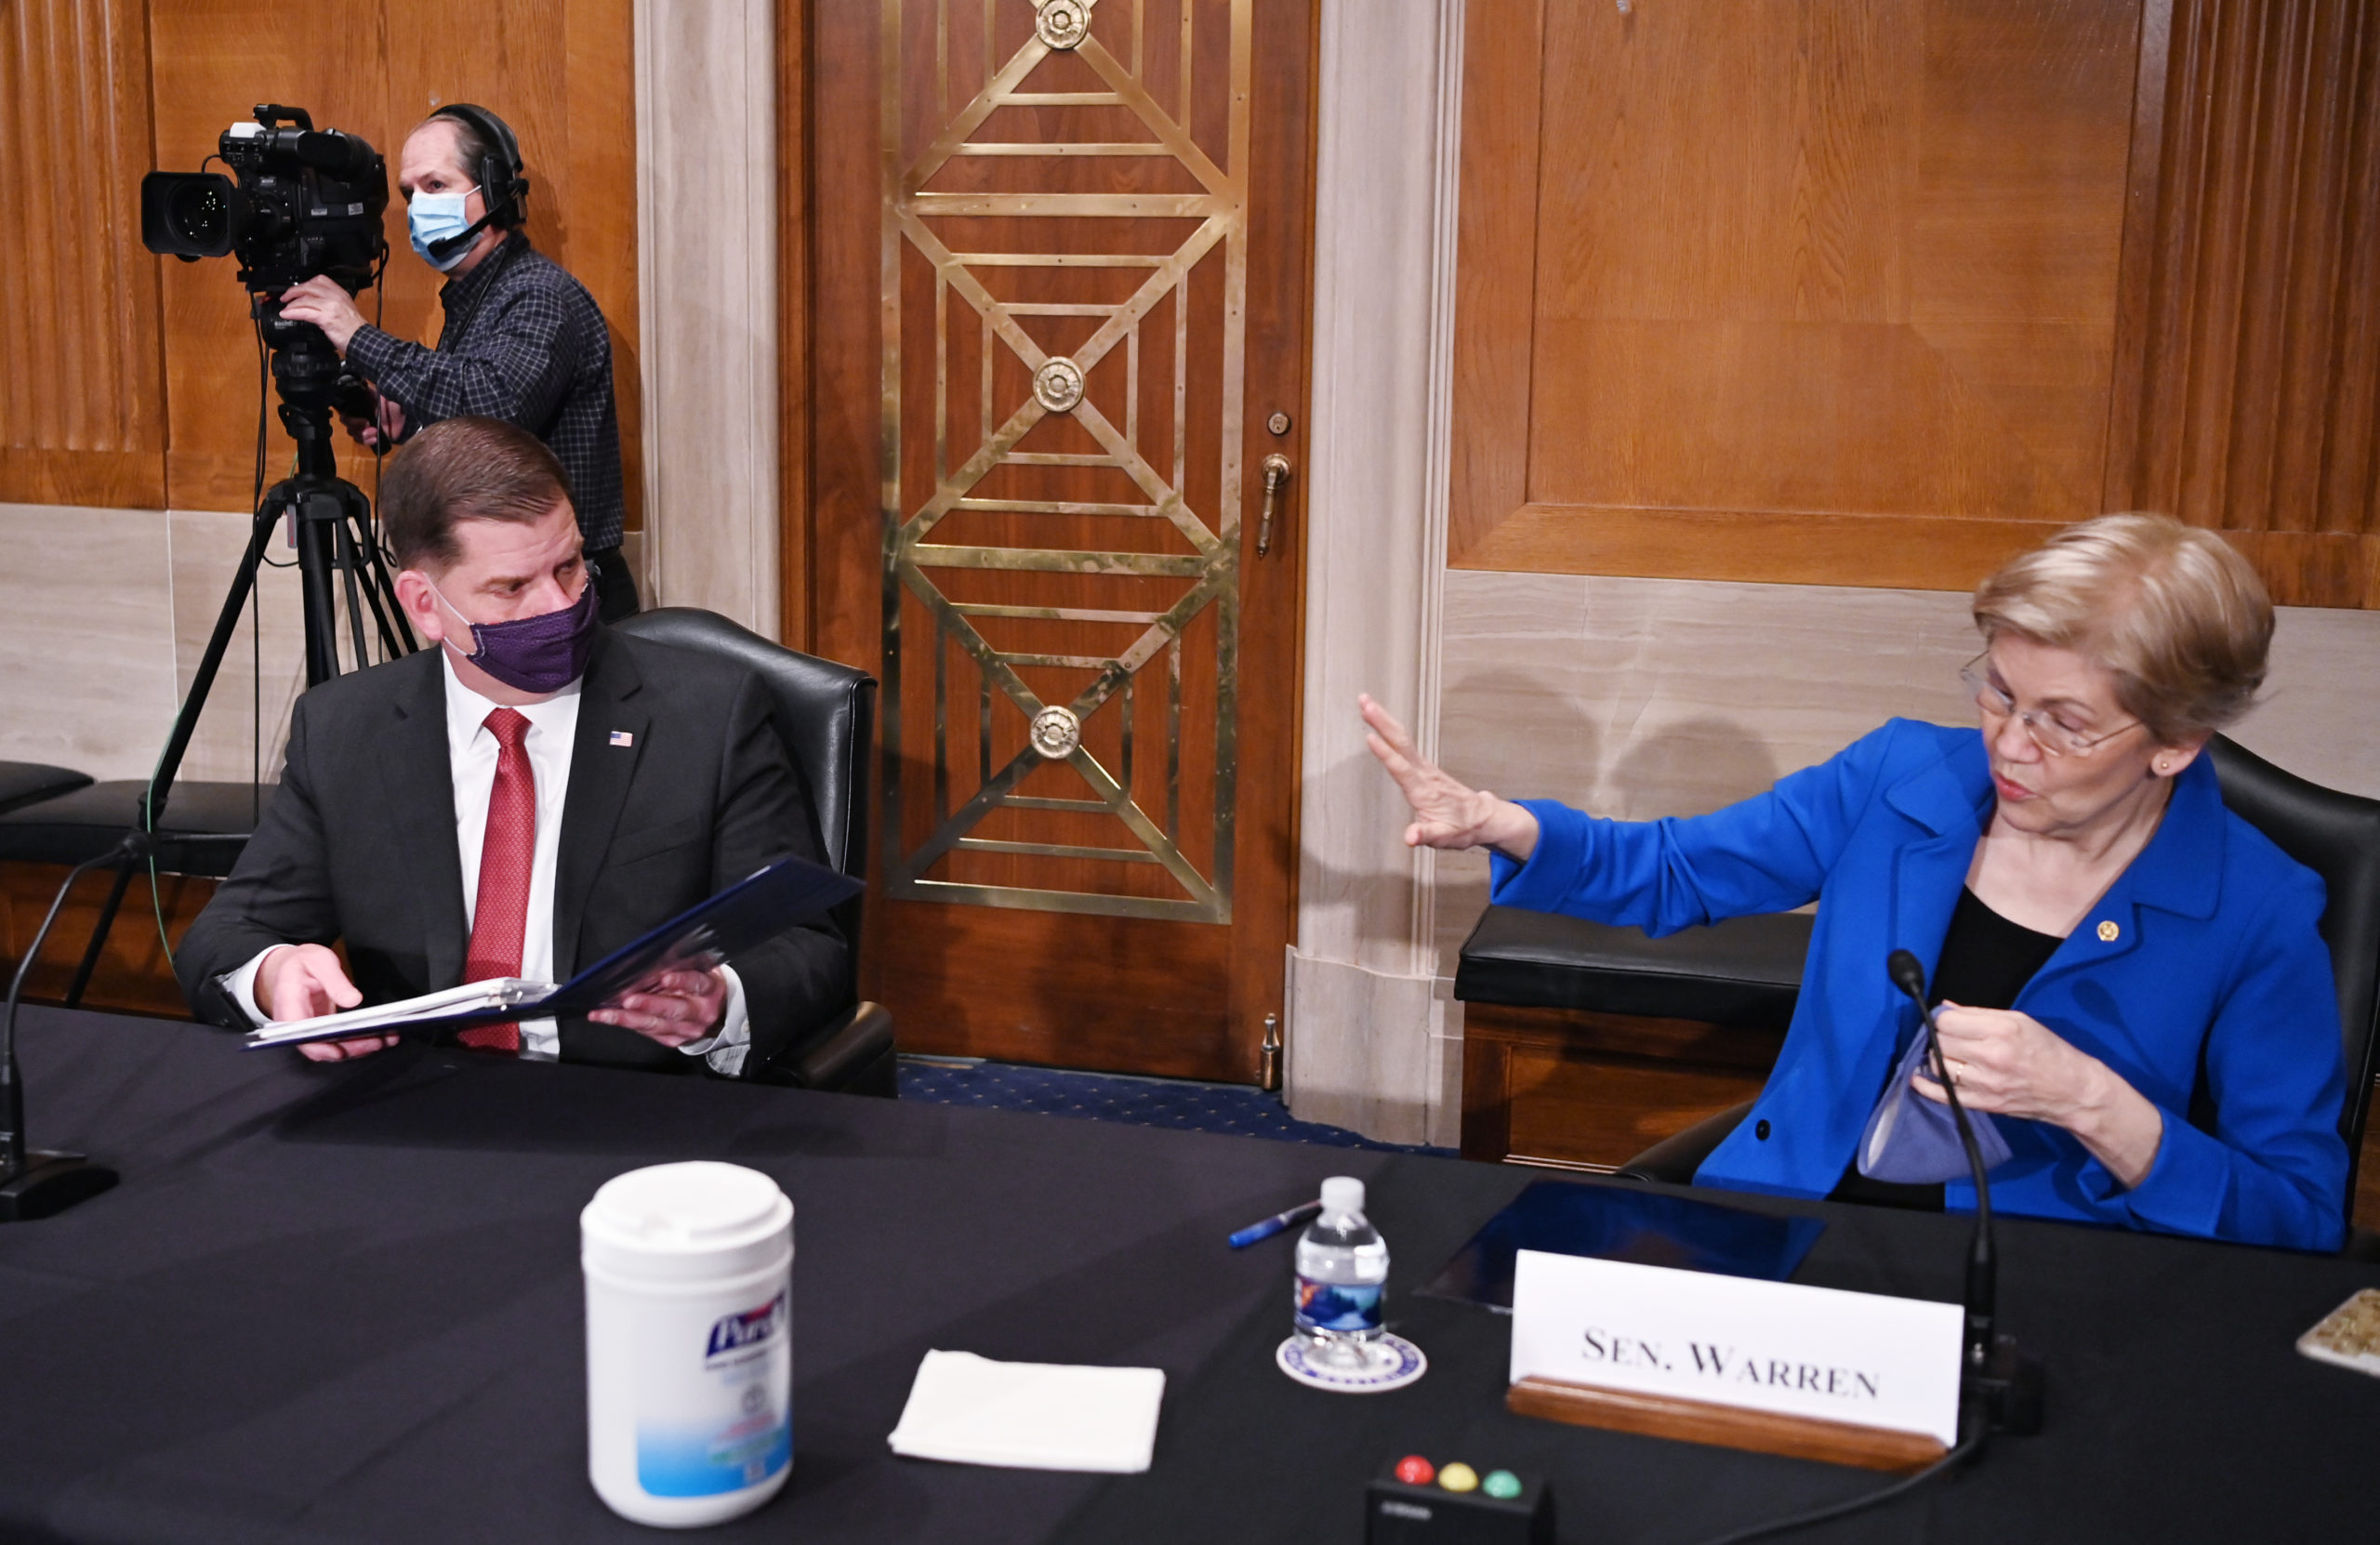 Sen. Elizabeth Warren and Marty Walsh arrive at his confirmation hearing on Feb. 4. (Mandel Ngan/Pool/Getty Images)